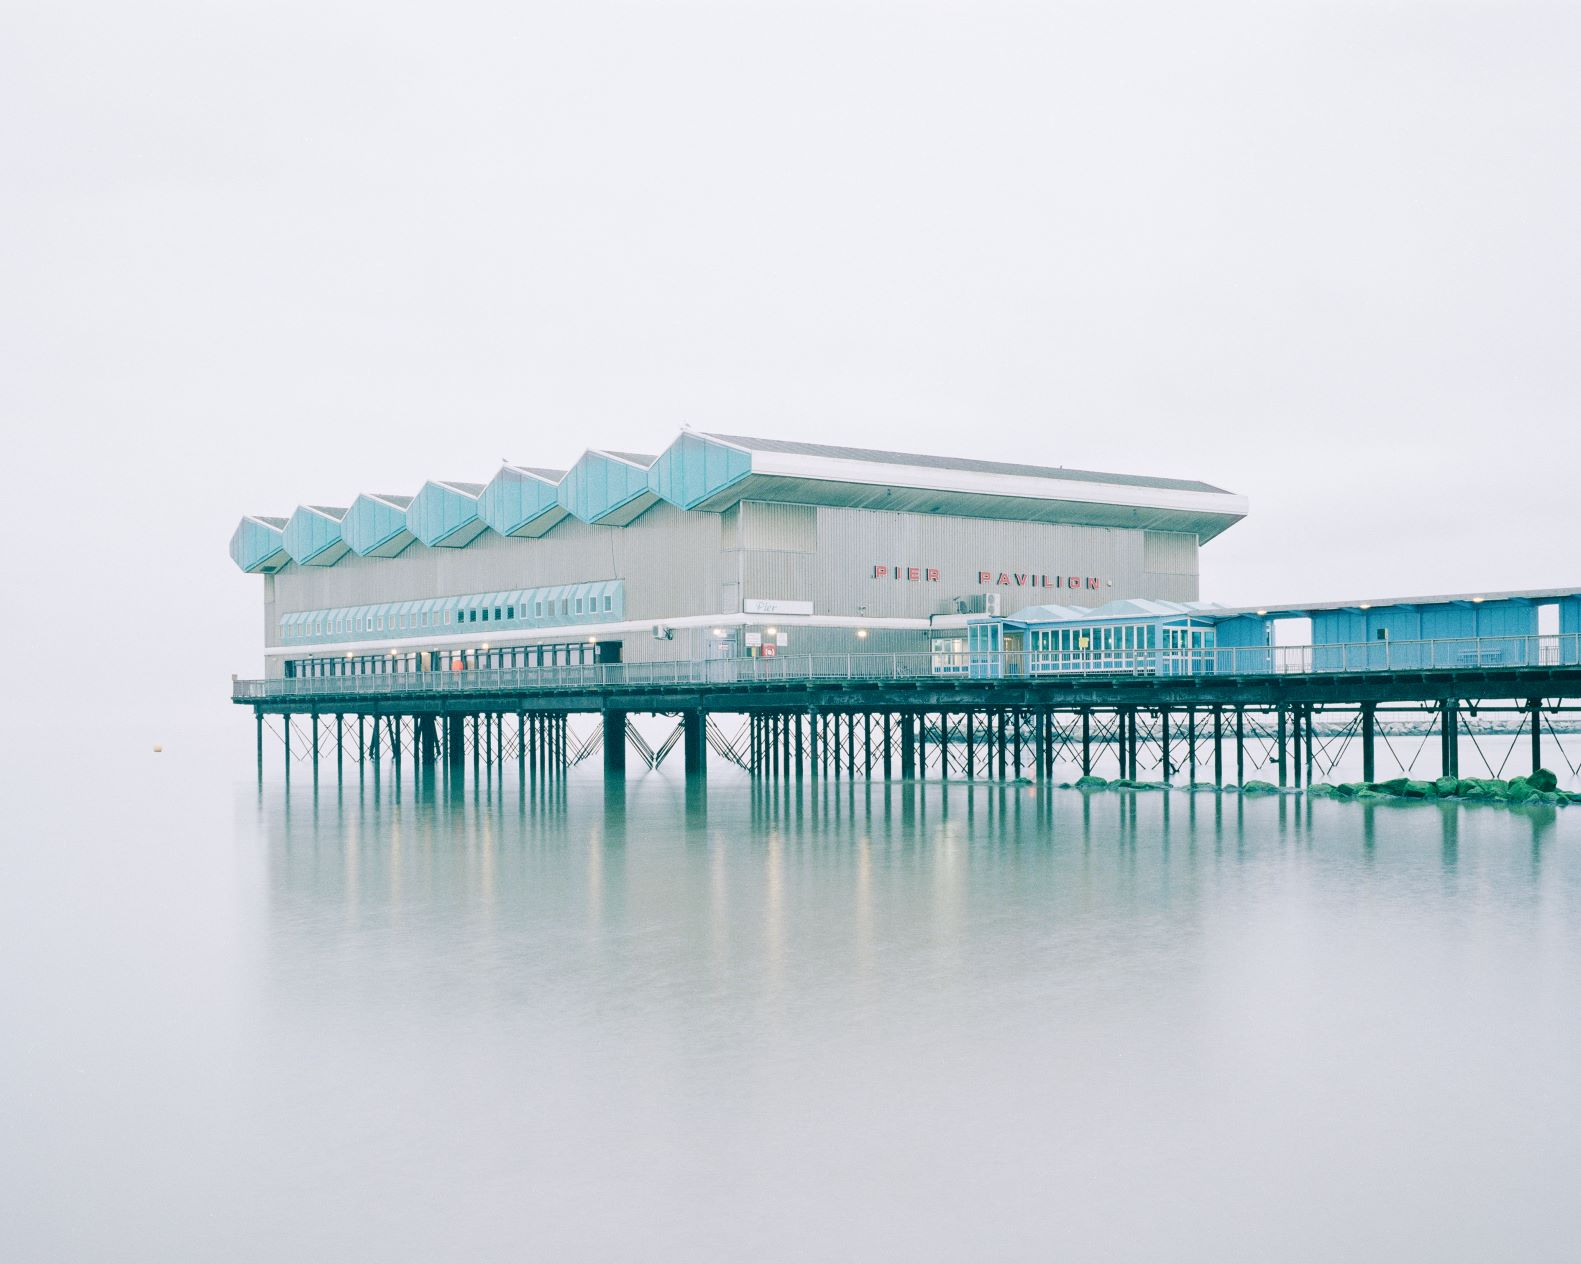 Herne Bay Pier by Rob Ball